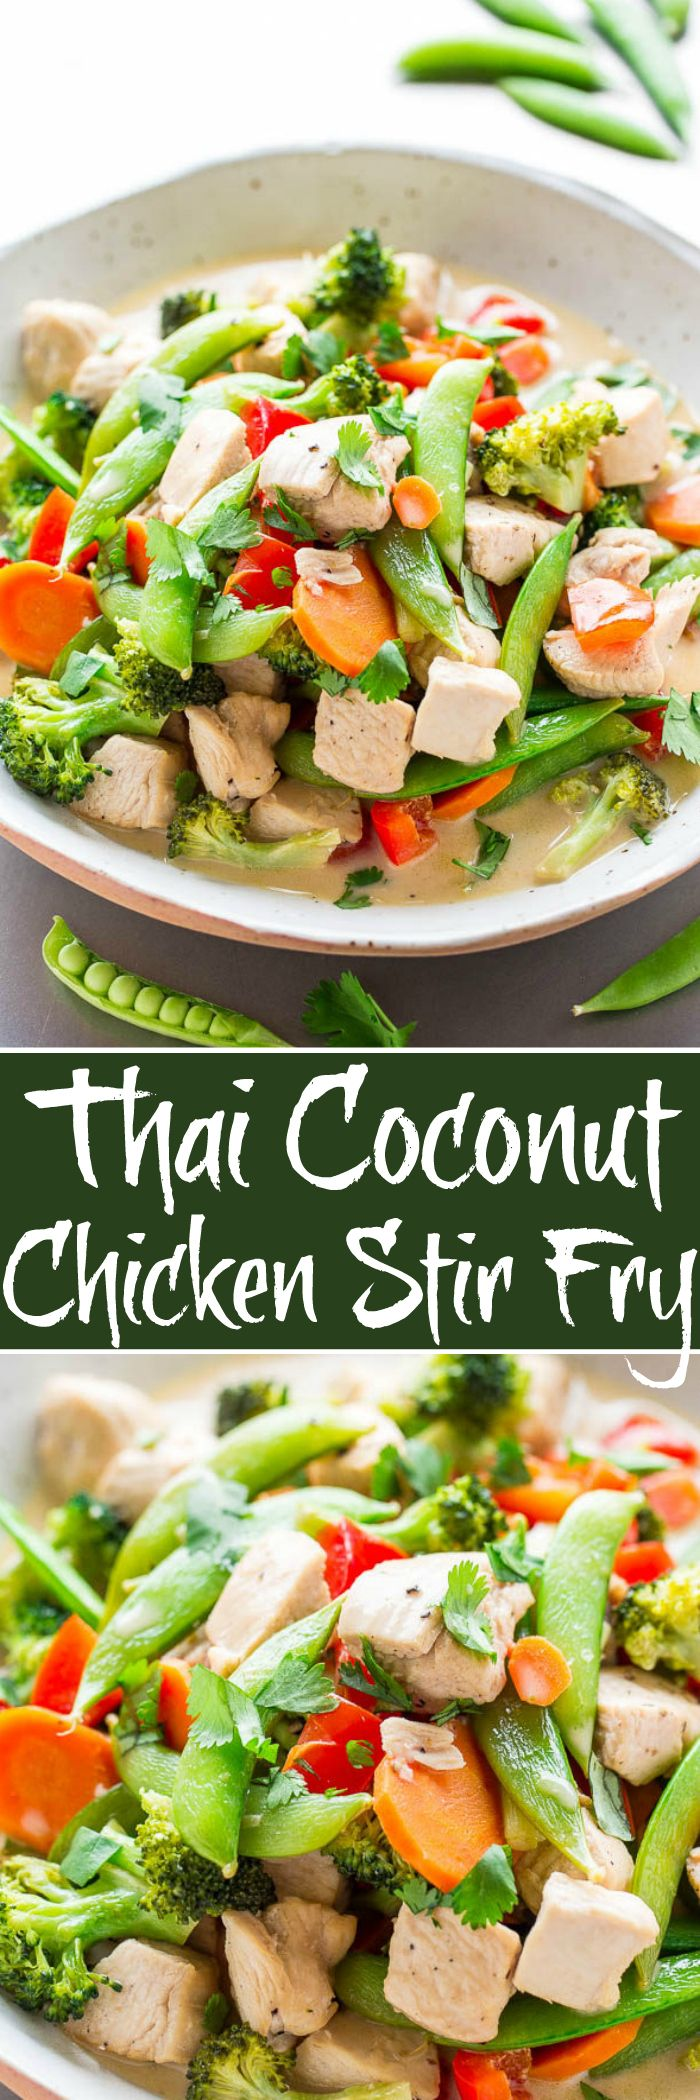 Thai Coconut Chicken Stir Fry - Chicken, sugar snap peas, bell peppers ...